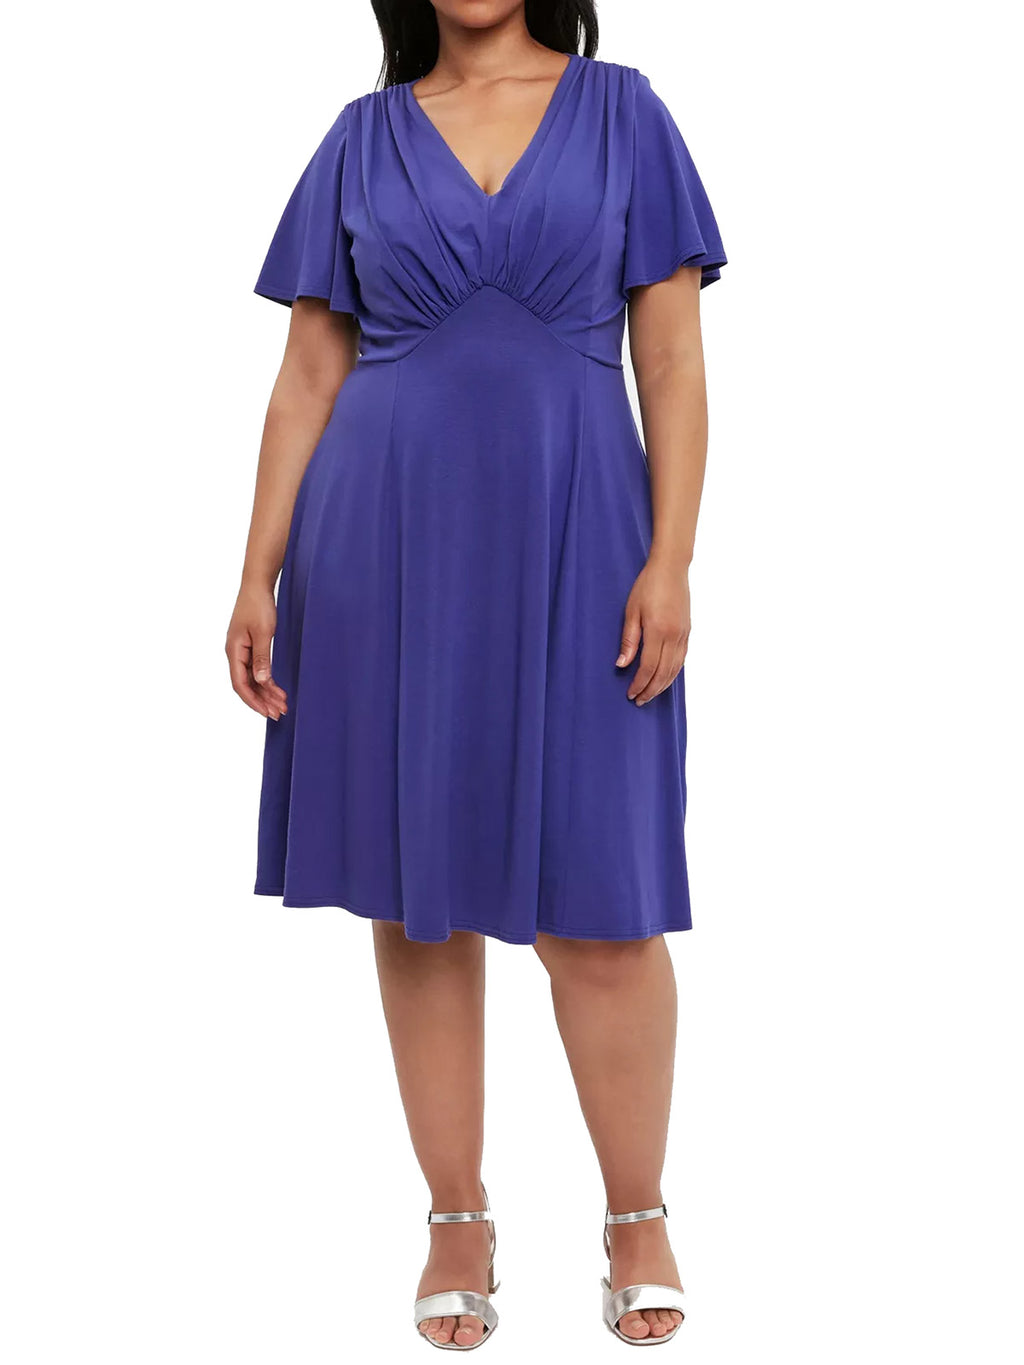 Jersey Dress Fit and Flare Purple - D81419 - Pure Plus Clothing